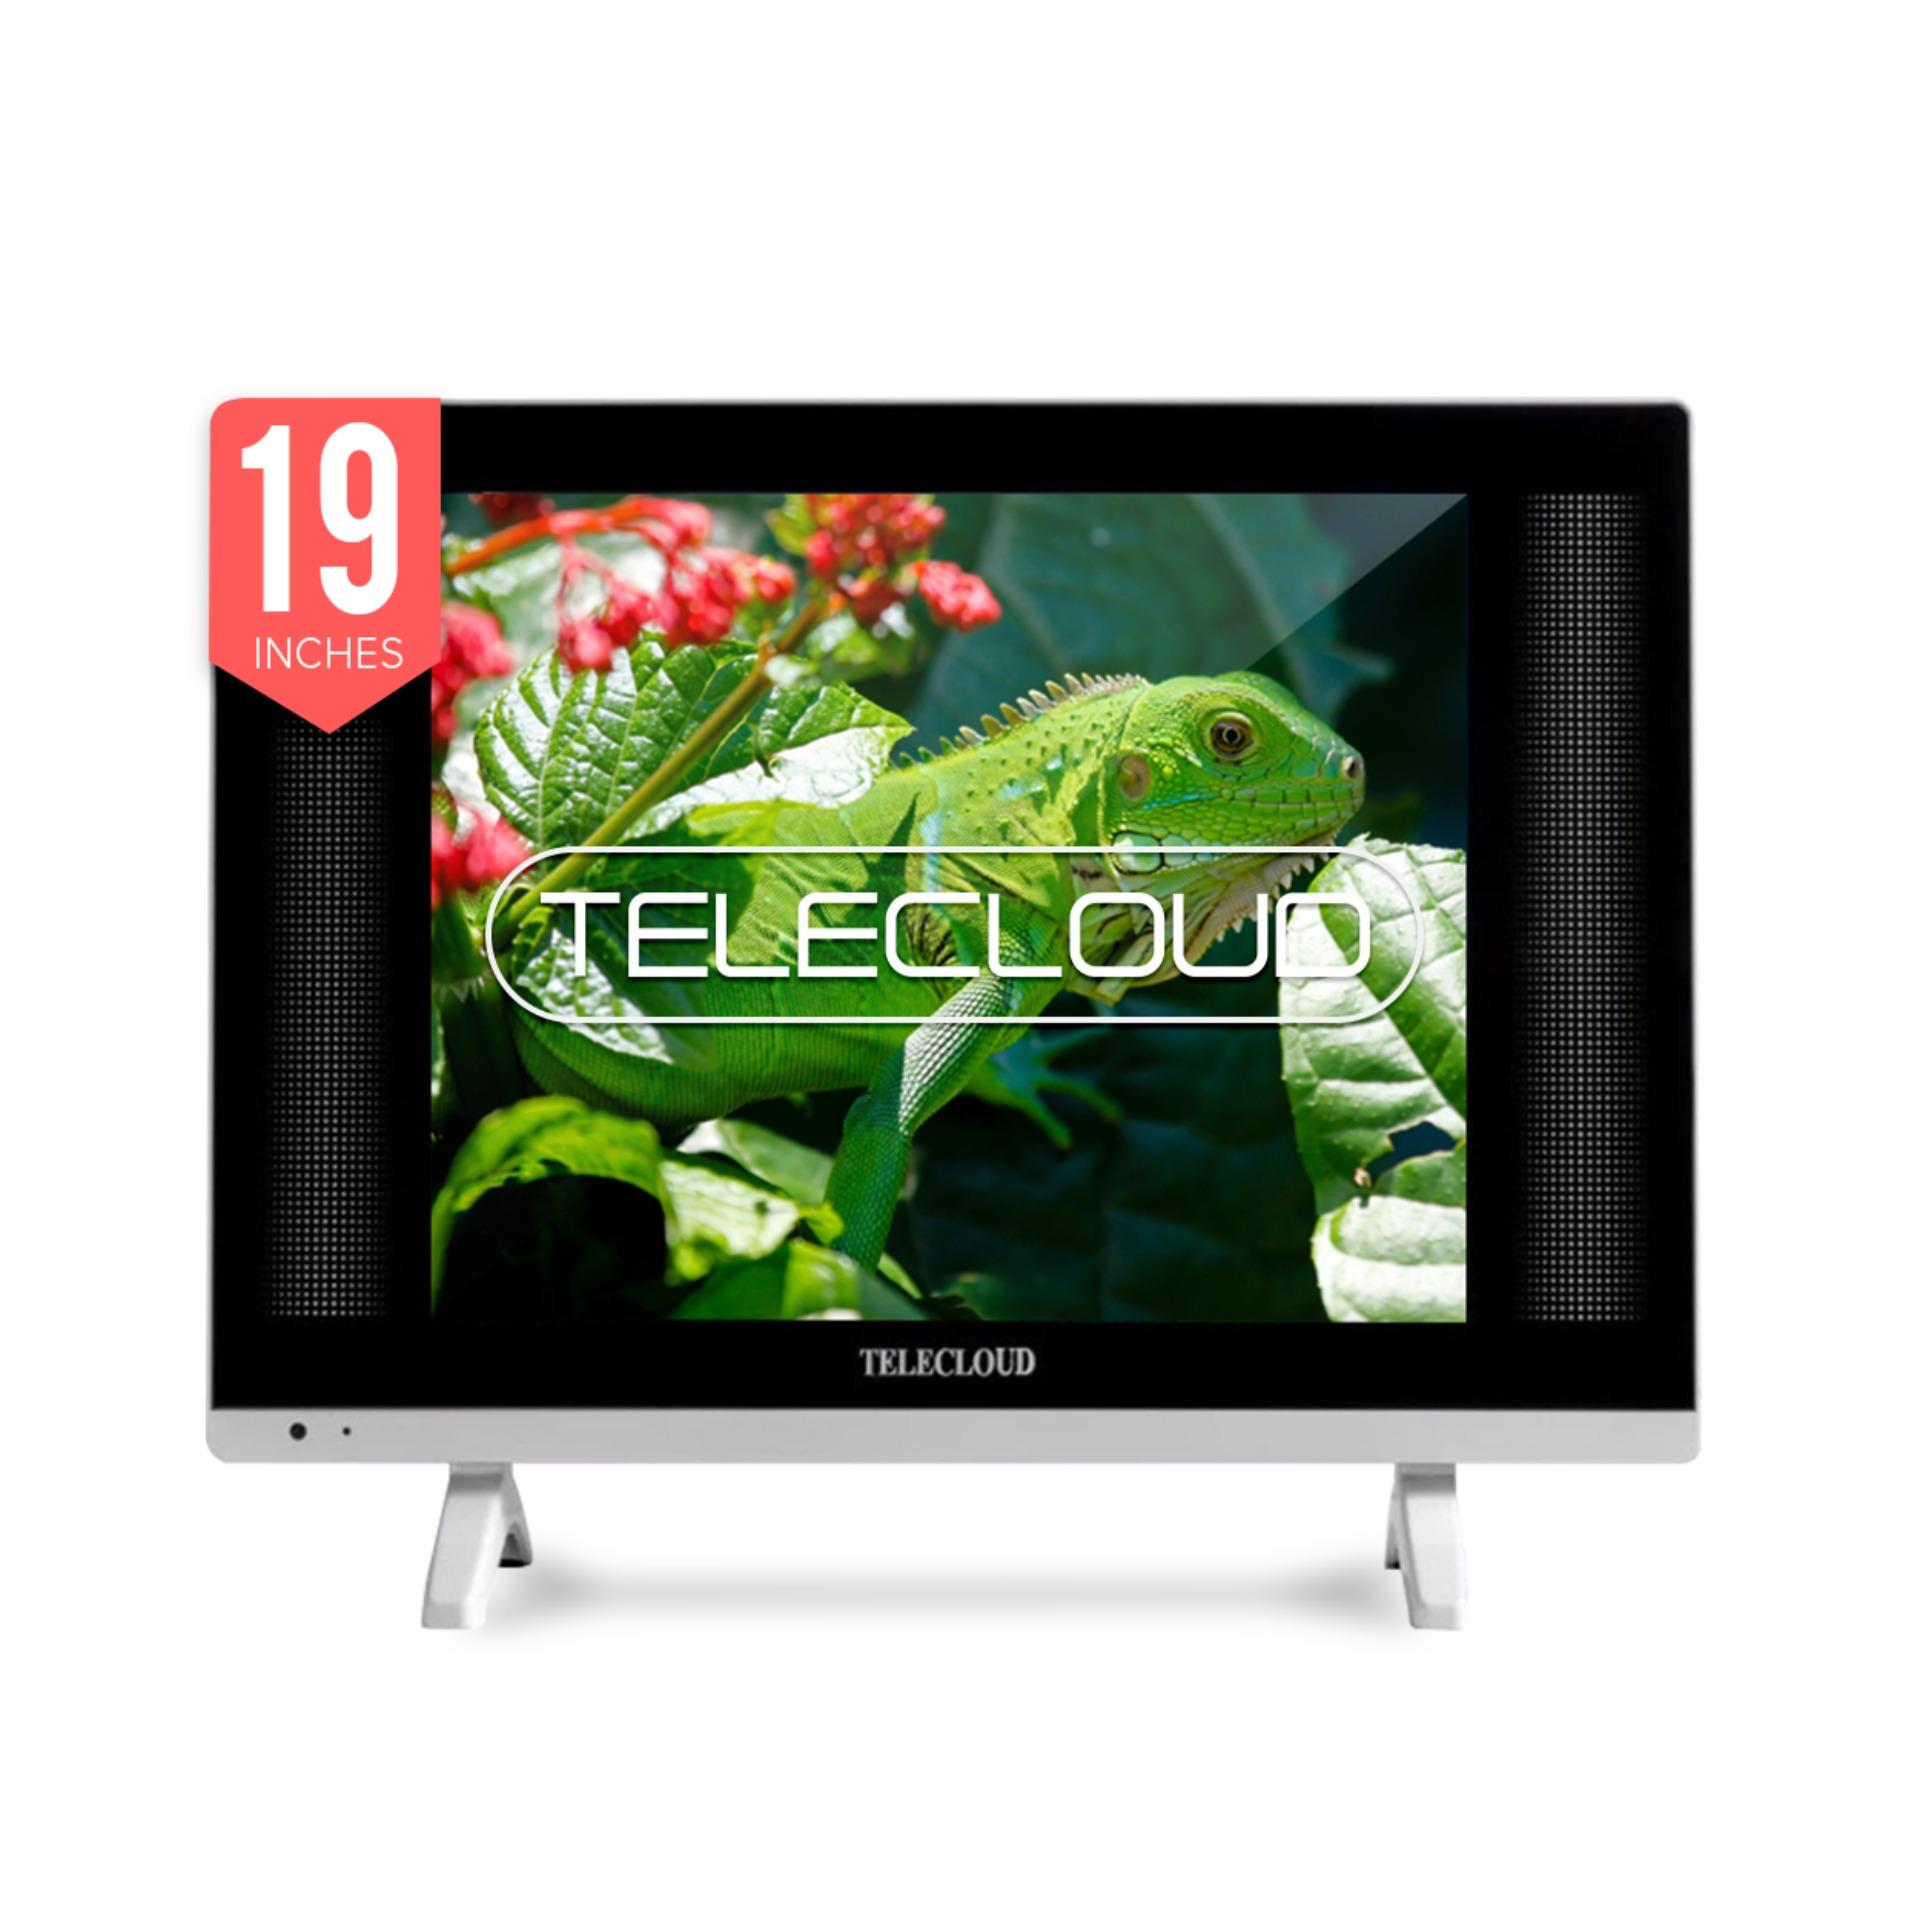 058b93802 TELECLOUD Philippines: TELECLOUD price list - LED TV for sale | Lazada